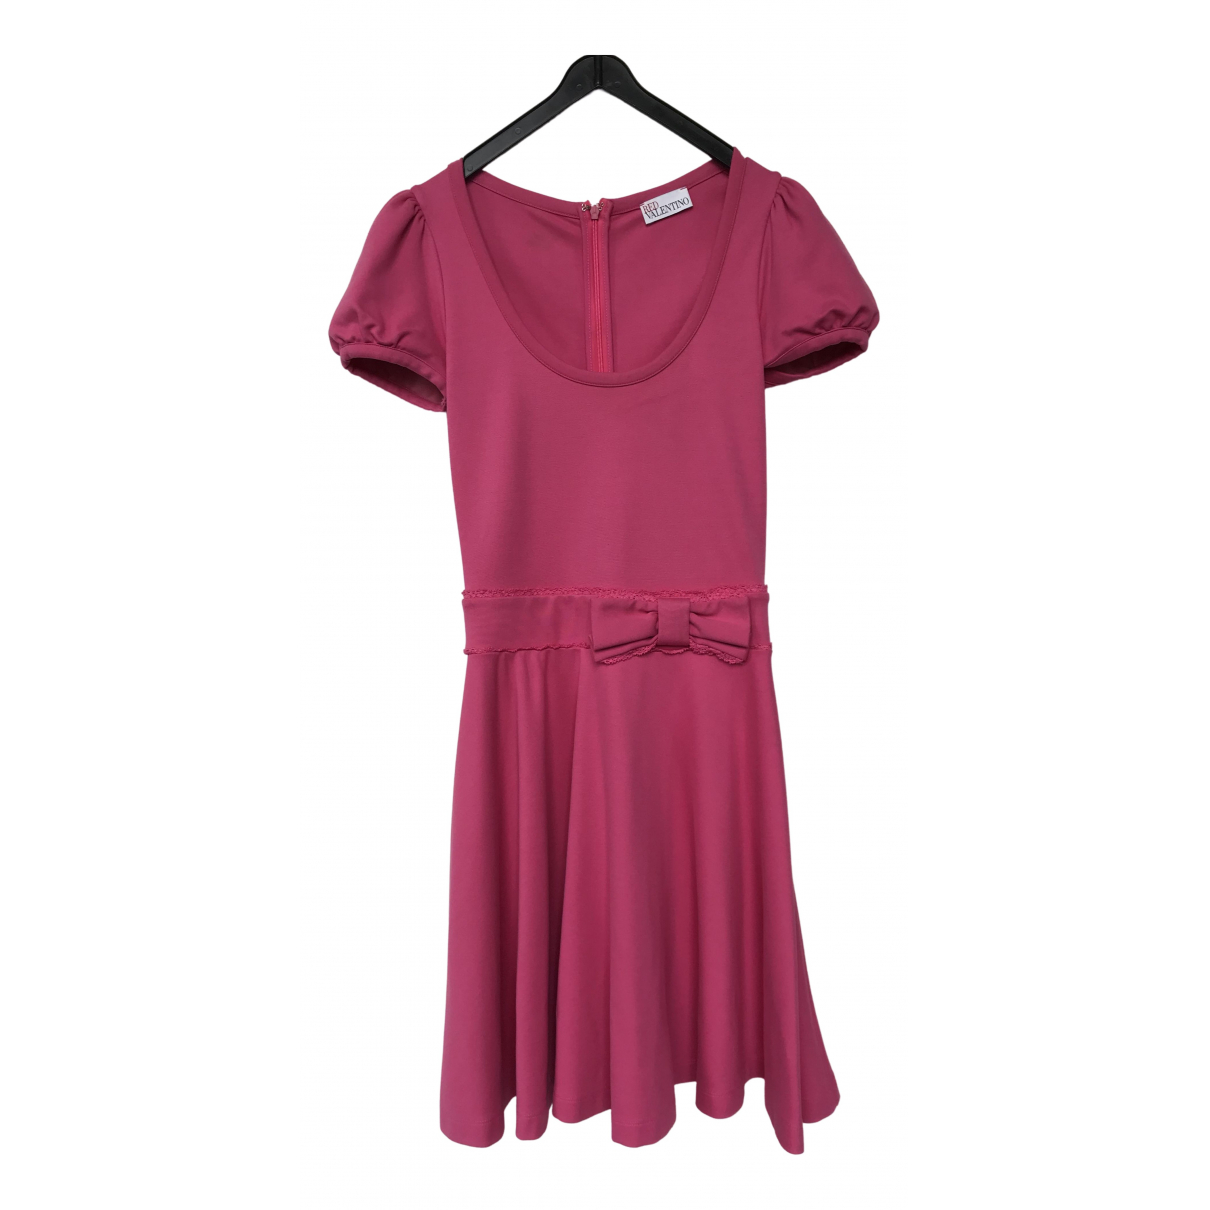 Mini vestido Red Valentino Garavani